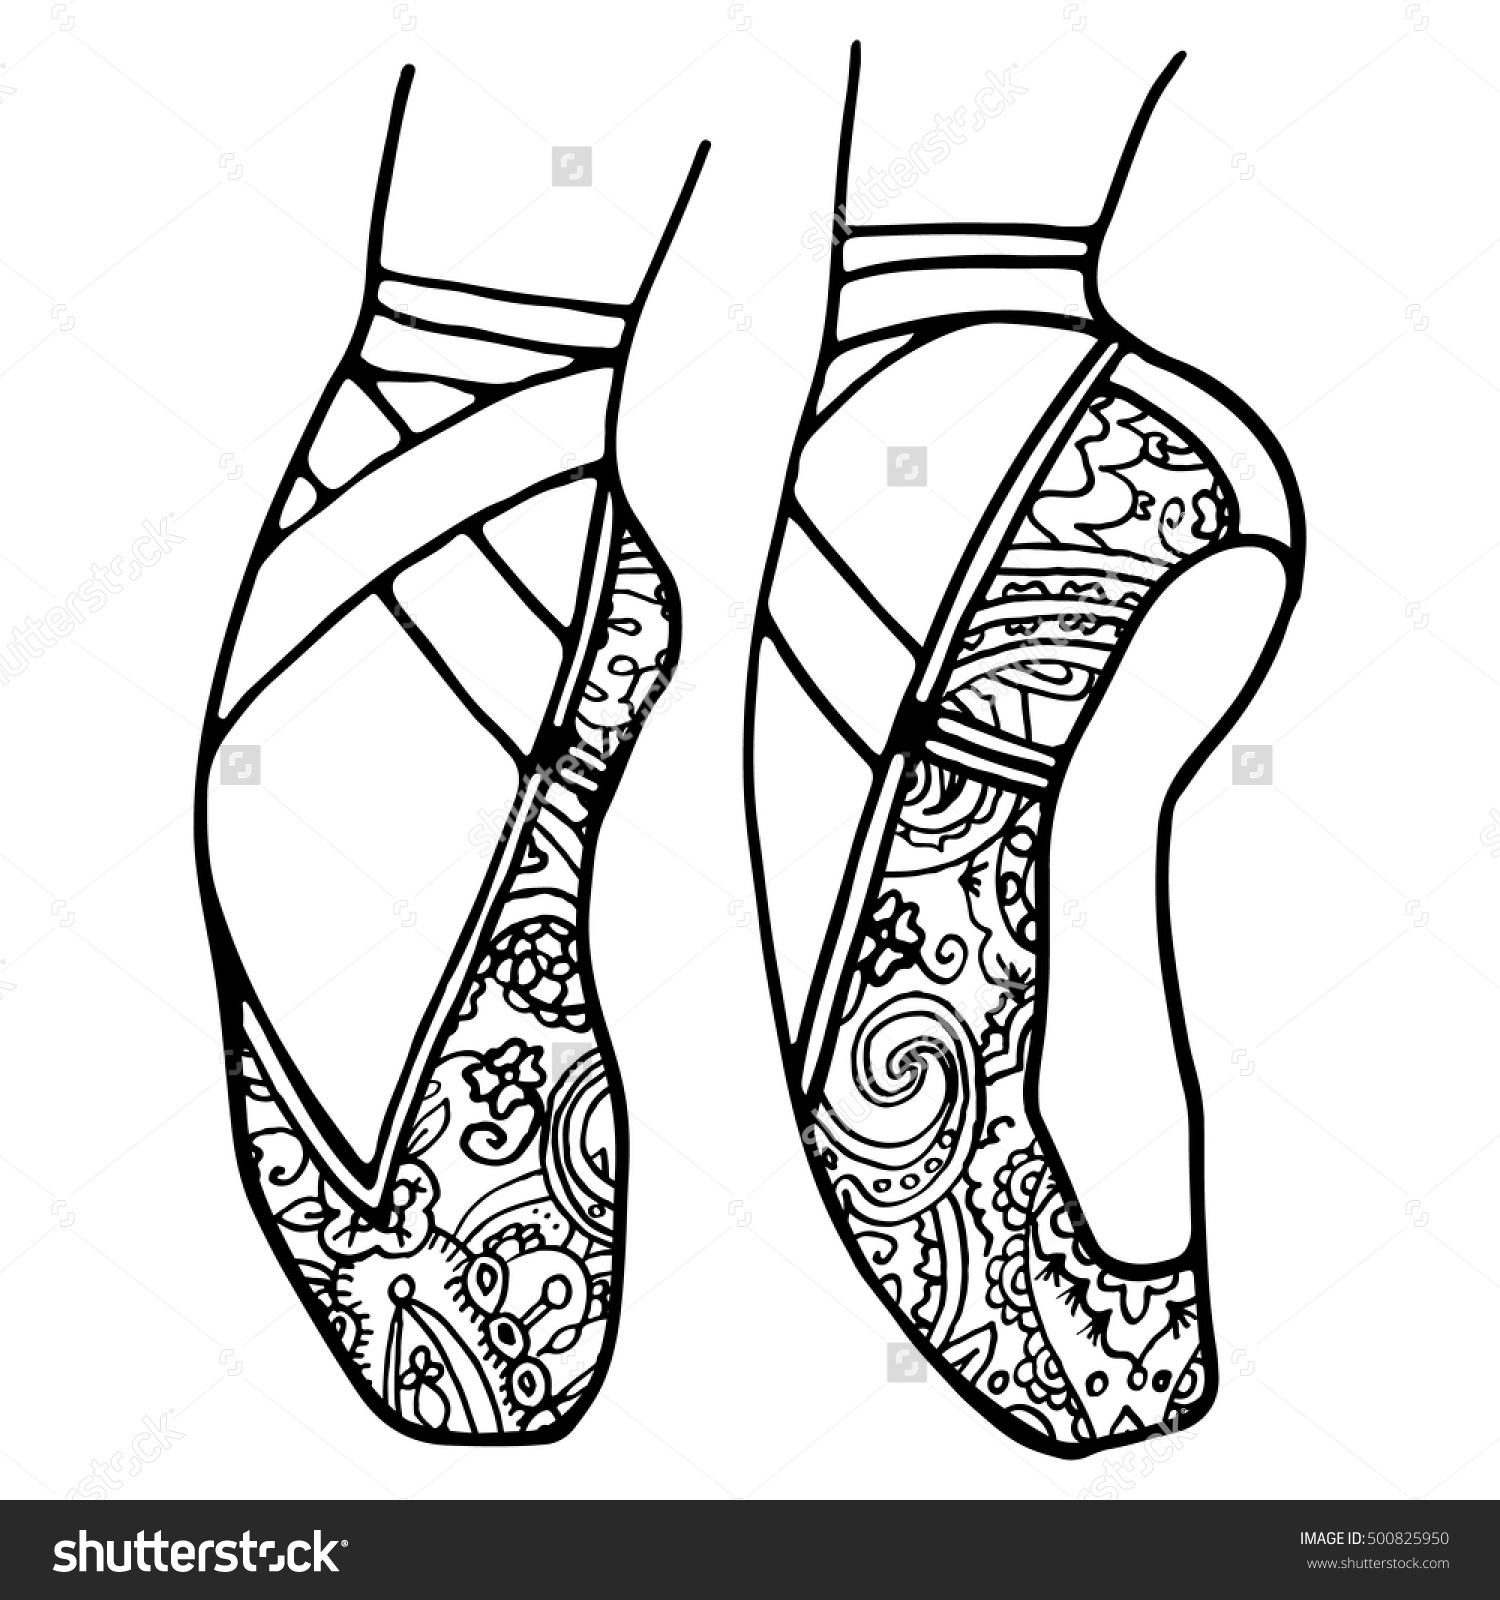 ballerina slippers coloring pages - photo#27